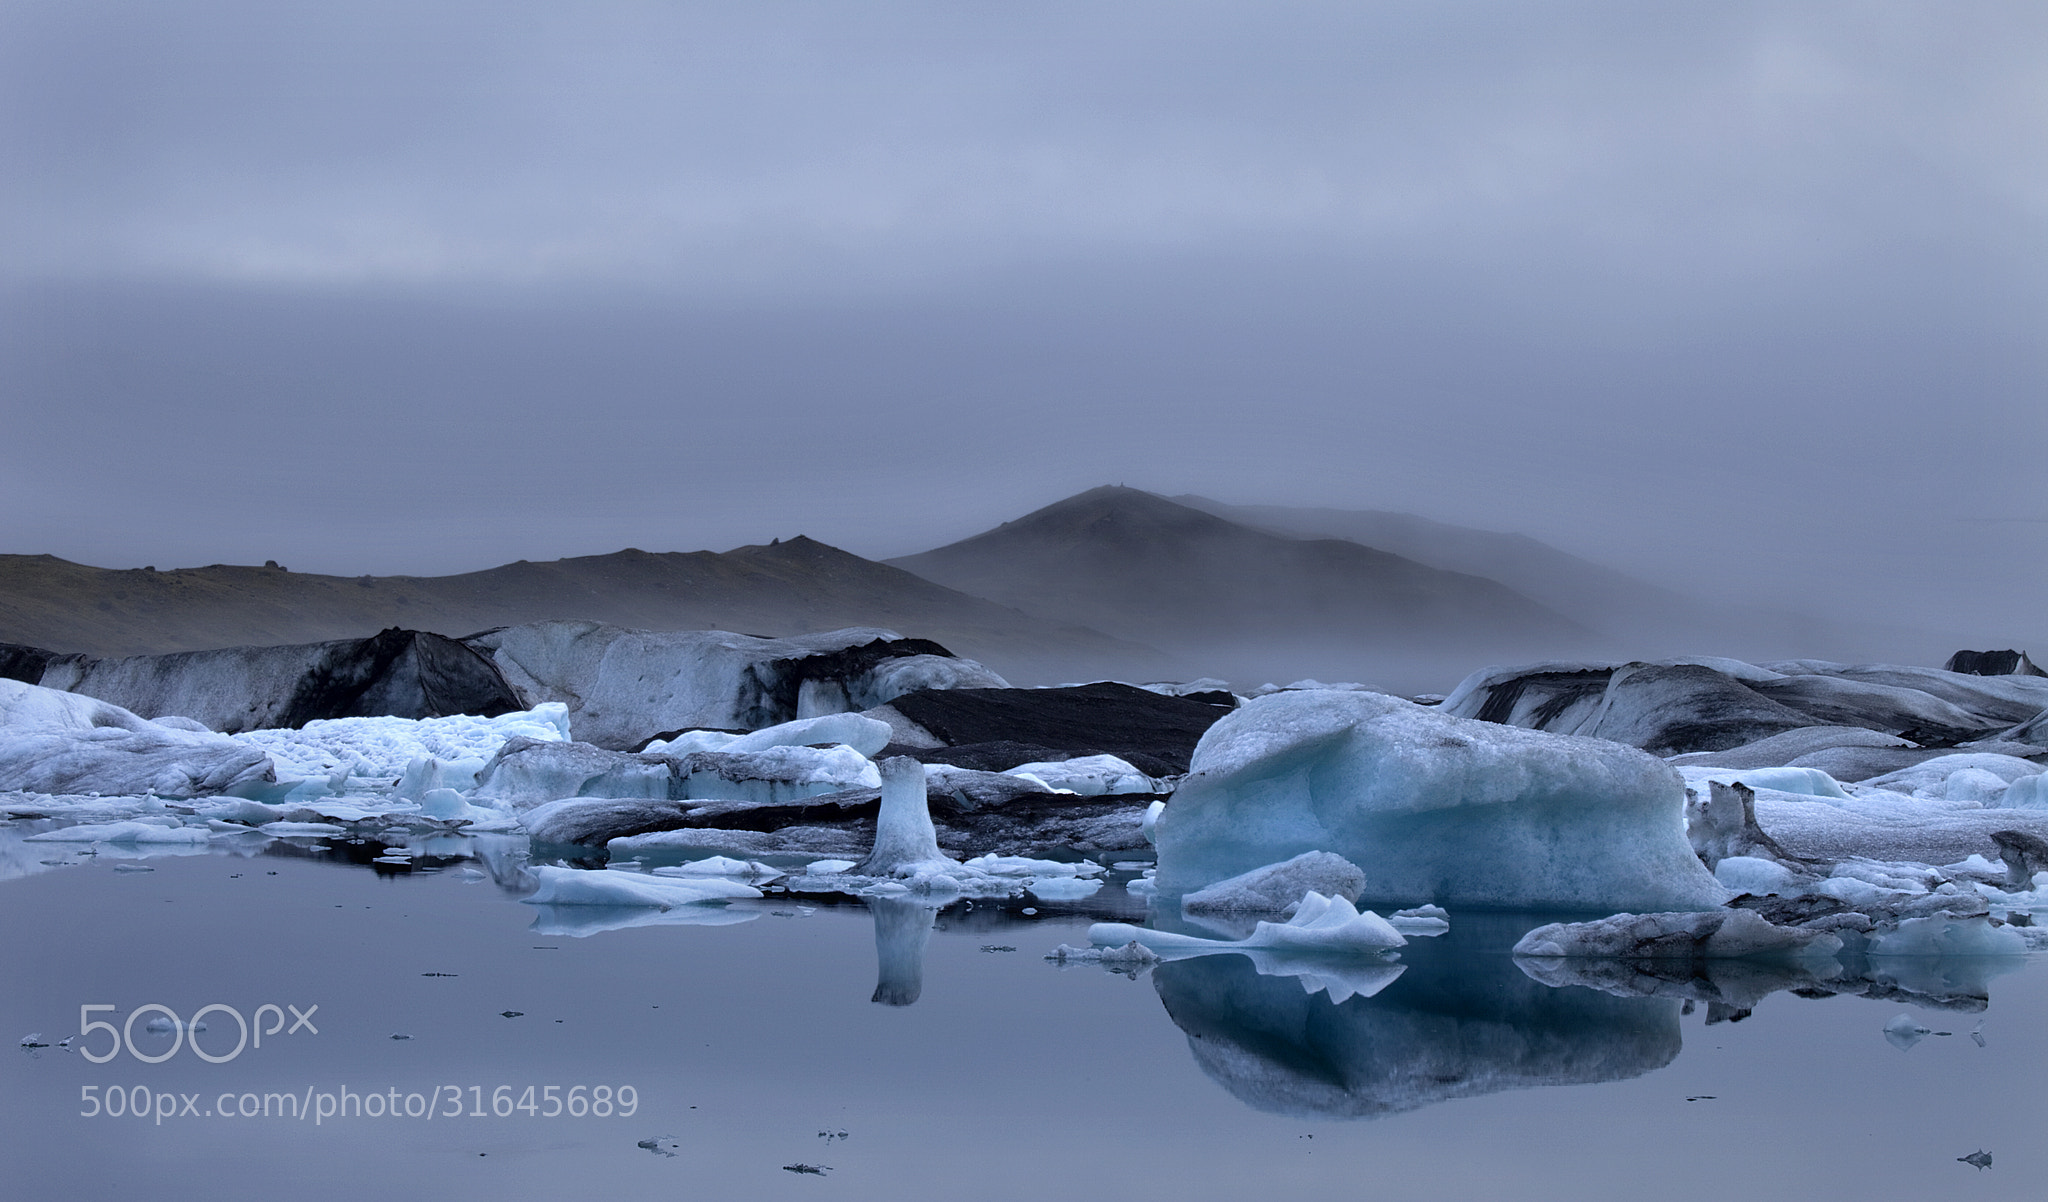 Photograph Iceland by Marius Edvardsson on 500px